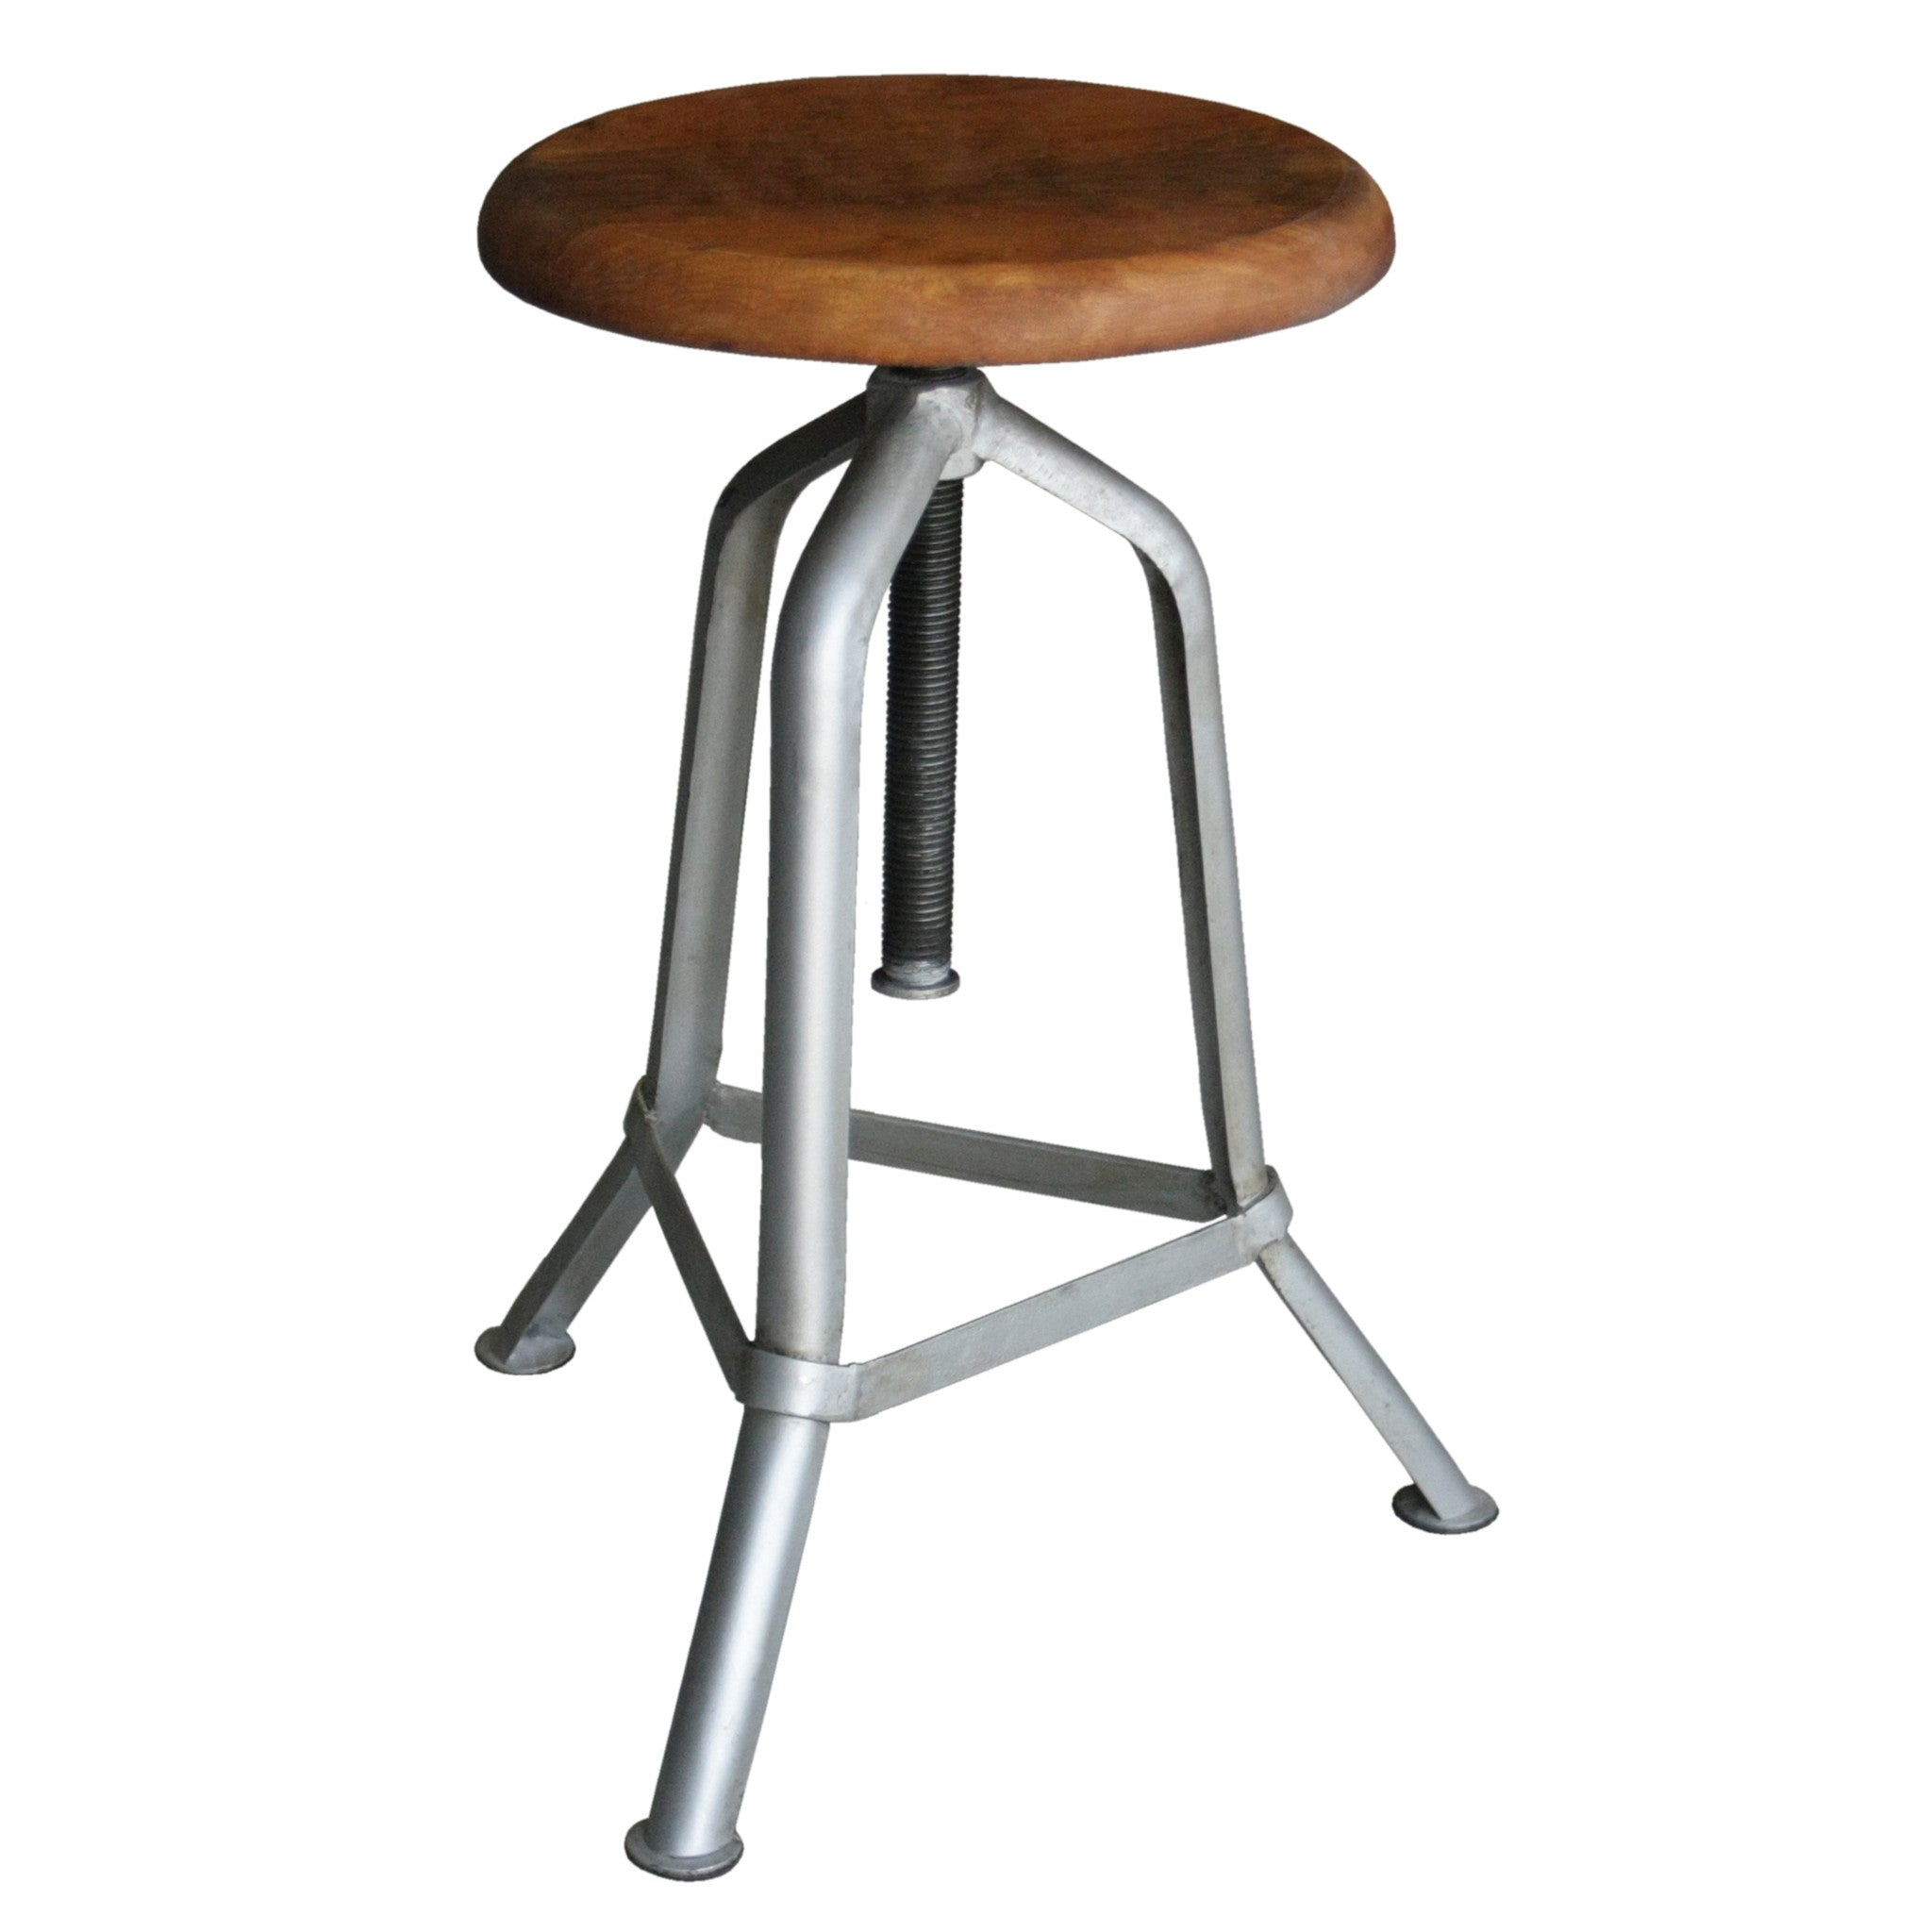 Tremendous Fernton Iron Wood Stool Antique Silver Gmtry Best Dining Table And Chair Ideas Images Gmtryco